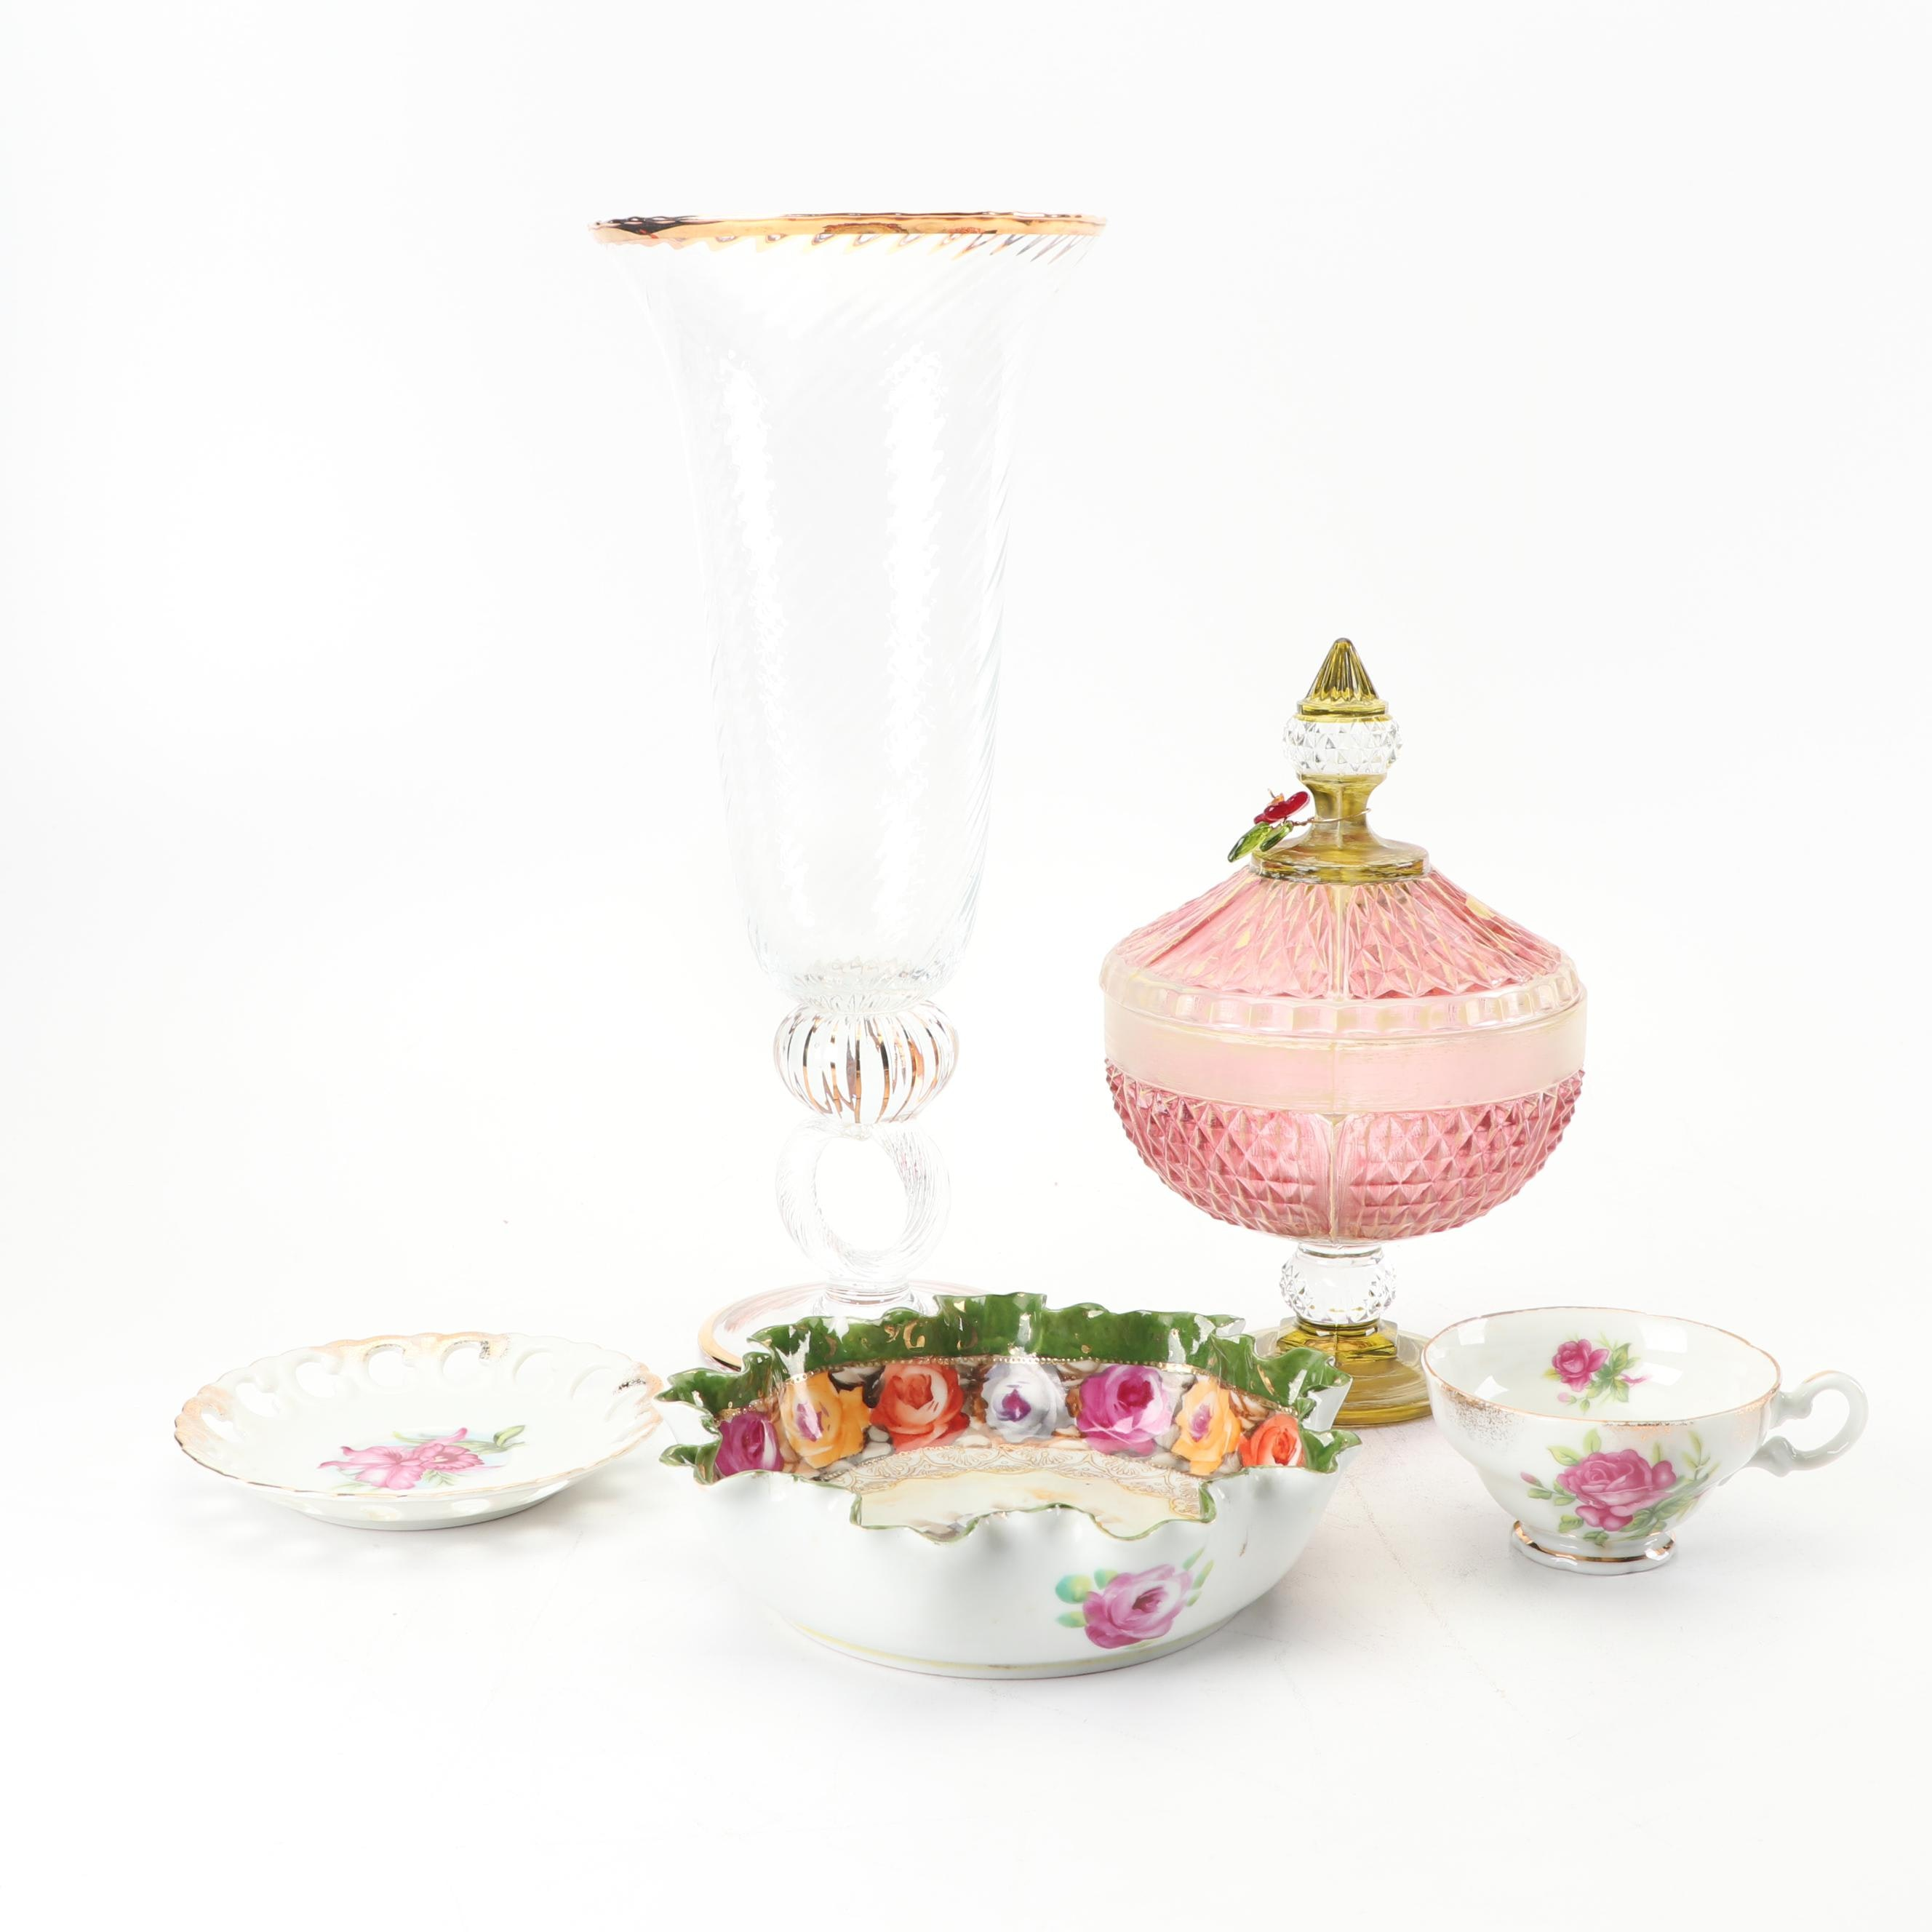 Vintage Porcelain Tableware with Turkish Flashed Cranberry Candy Dish